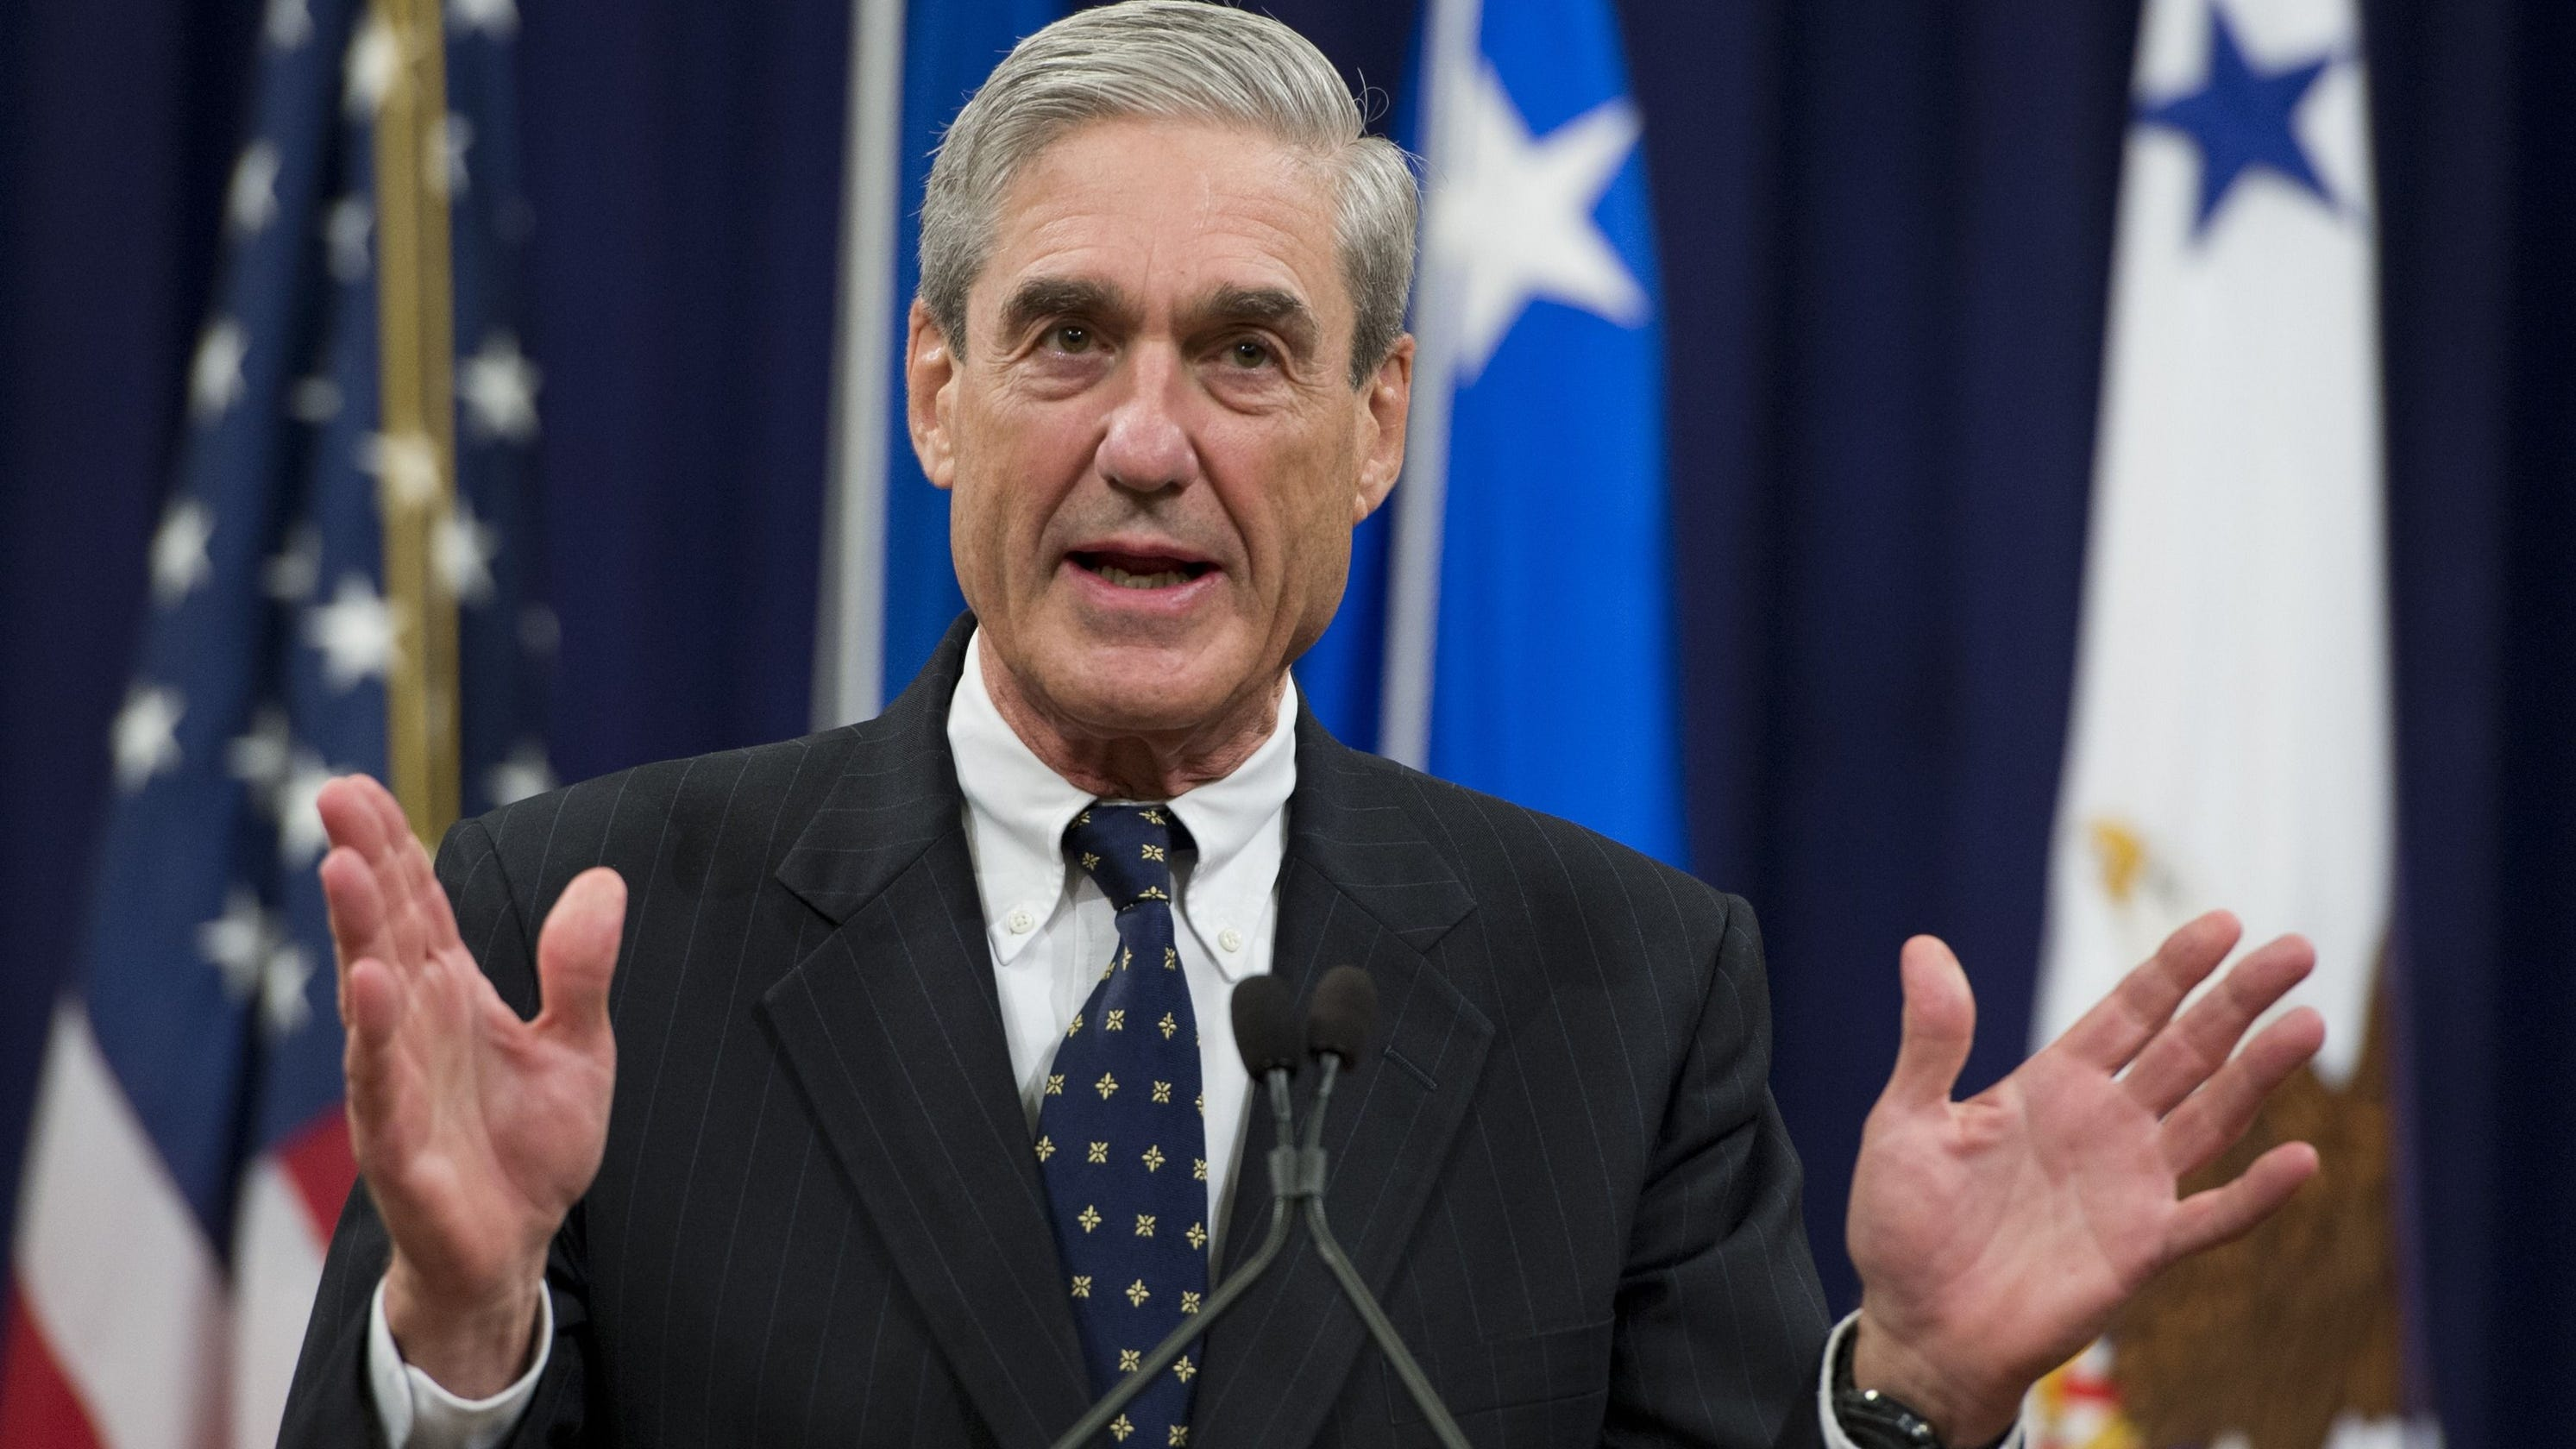 Mueller report: Here's what we know and still don't know (and may never know)